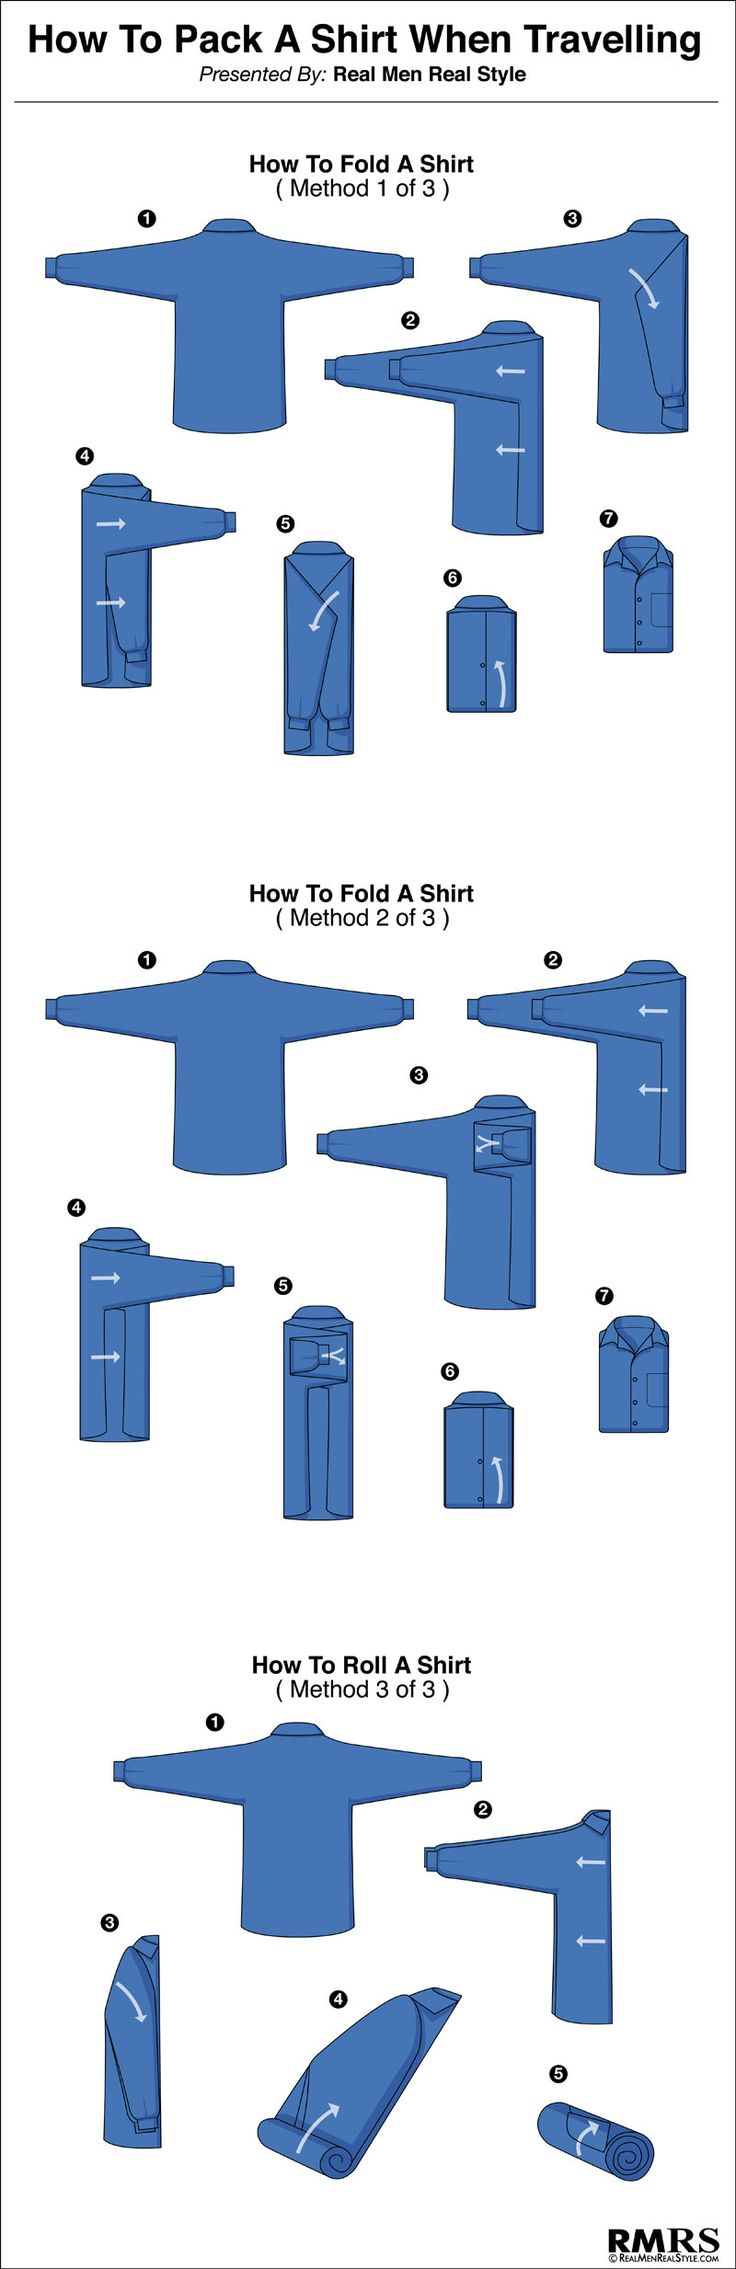 How To Fold A Men's Dress Shirt – Travel Tips For Folding Shirts (via…